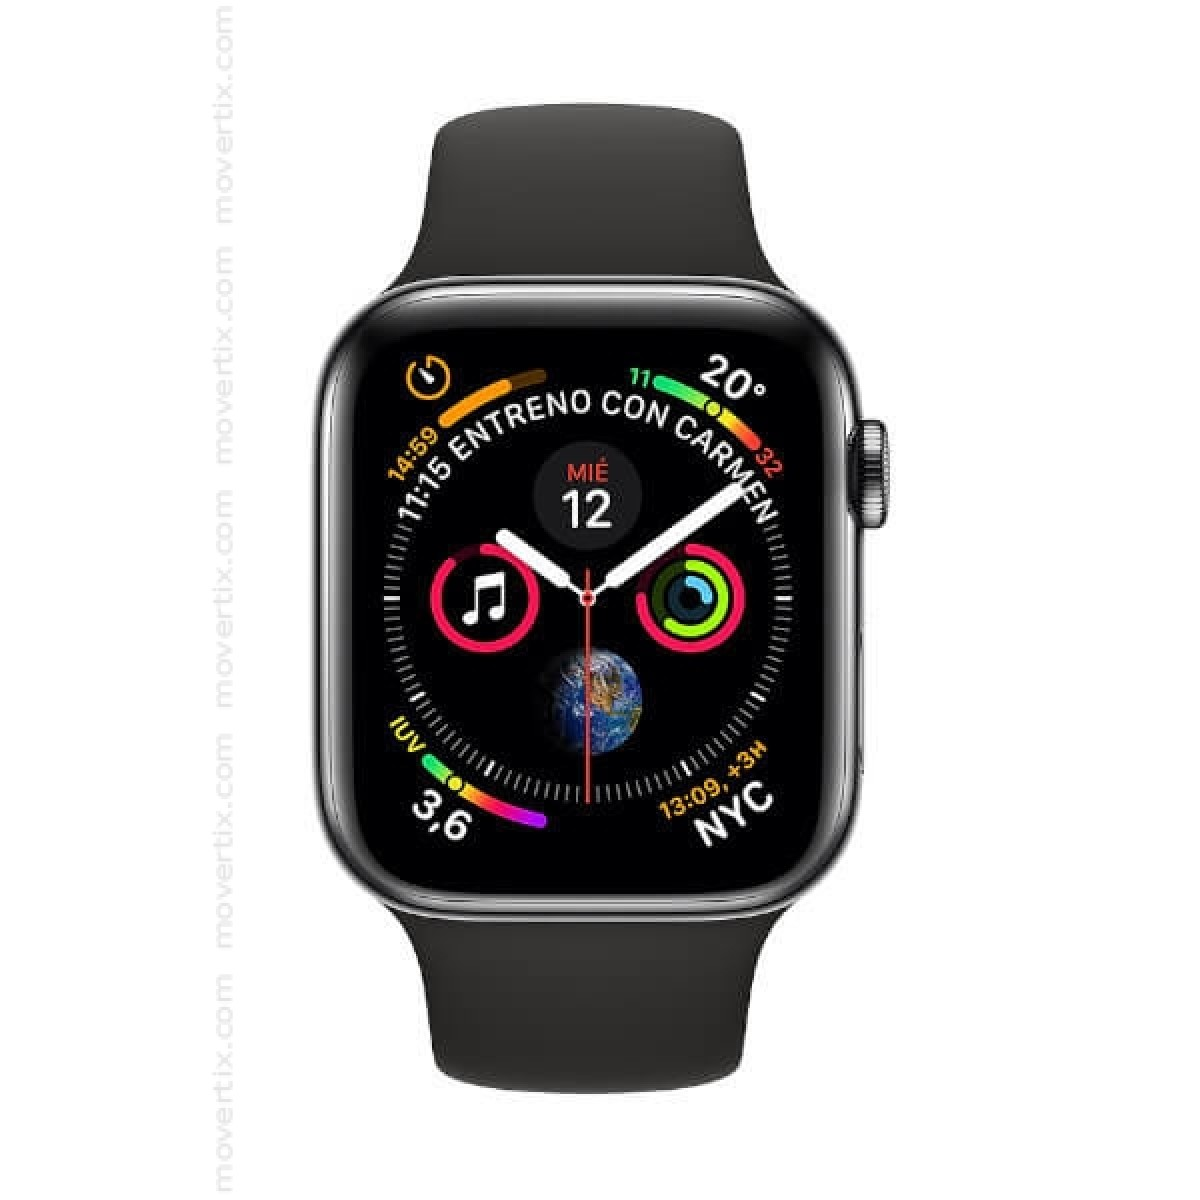 Apple watch series 4 gps cellular 44mm space grey with black band mtvu2ty a 0190198912046 for Watches with gps